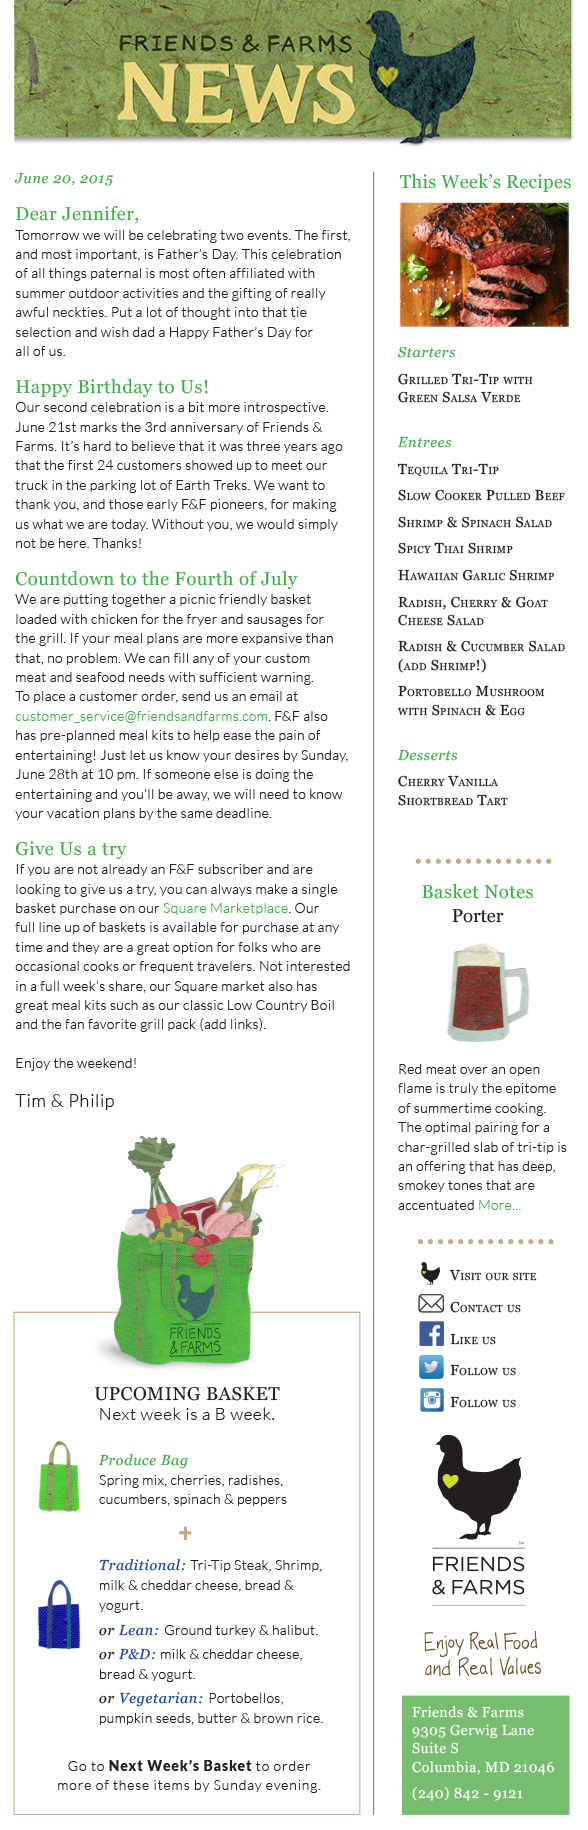 Redesign layout and spot illustrations for Friends & Farms newsletter